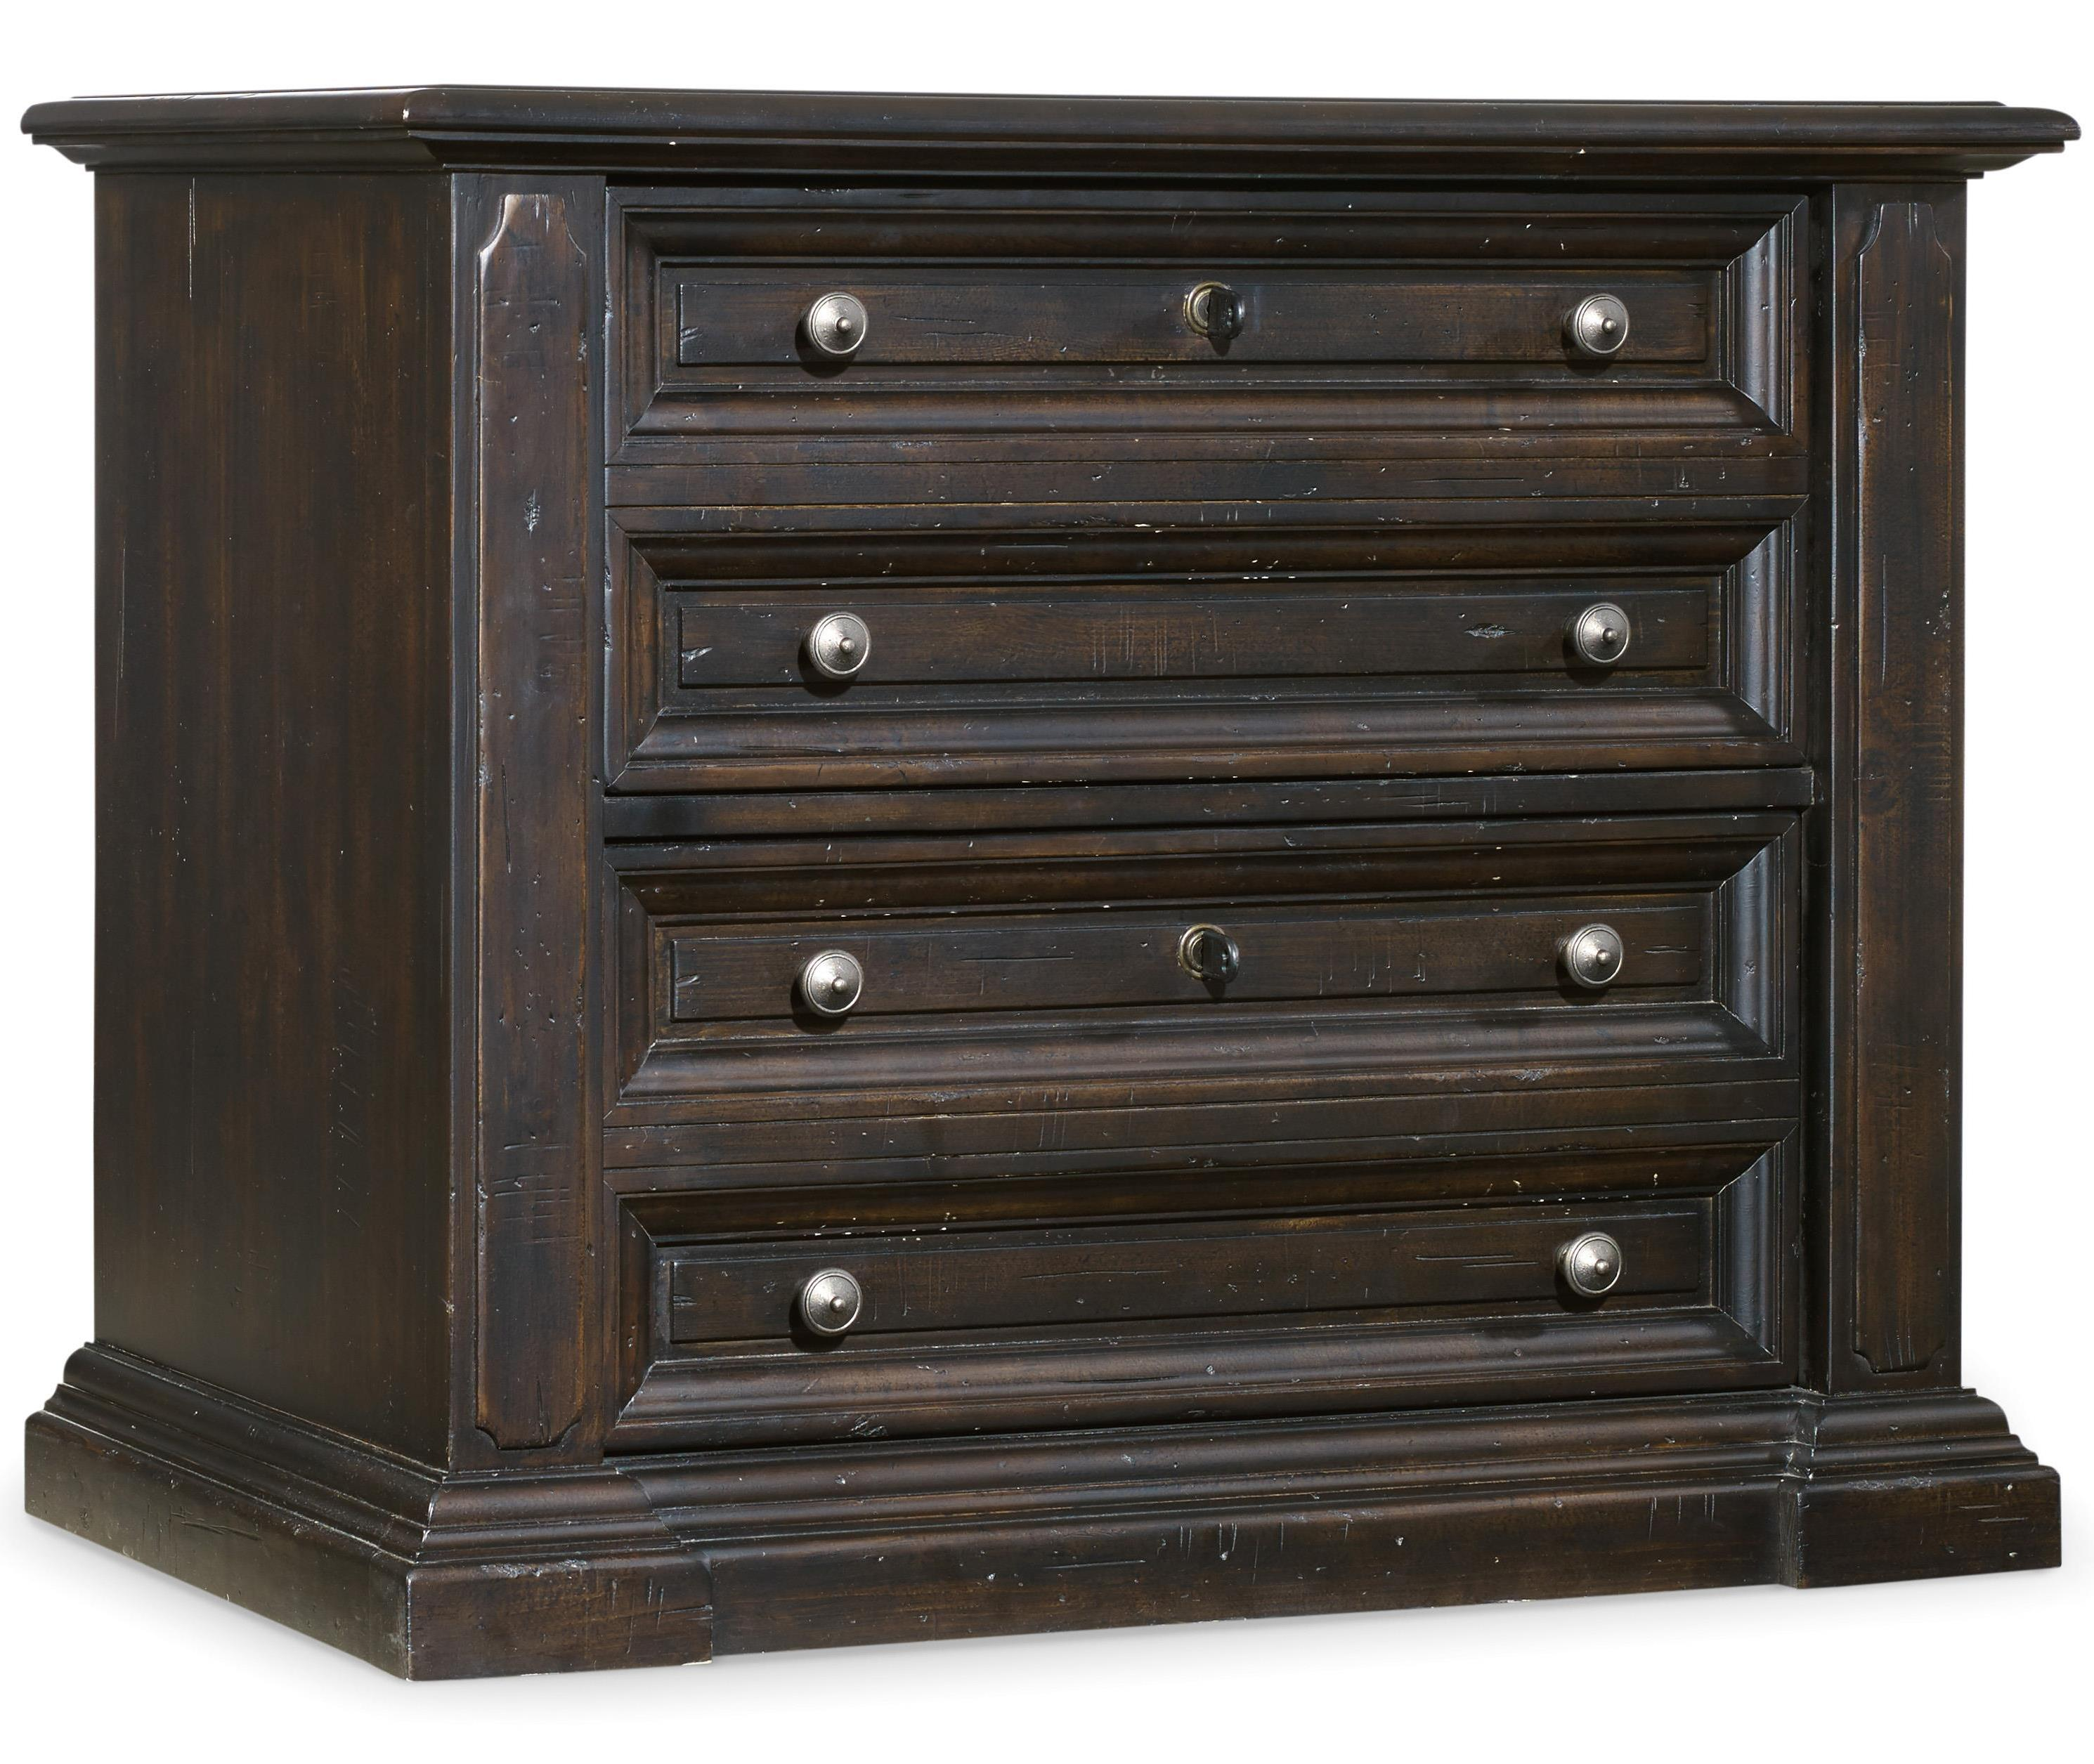 Hooker Furniture Treviso Lateral File - Item Number: 5374-10466